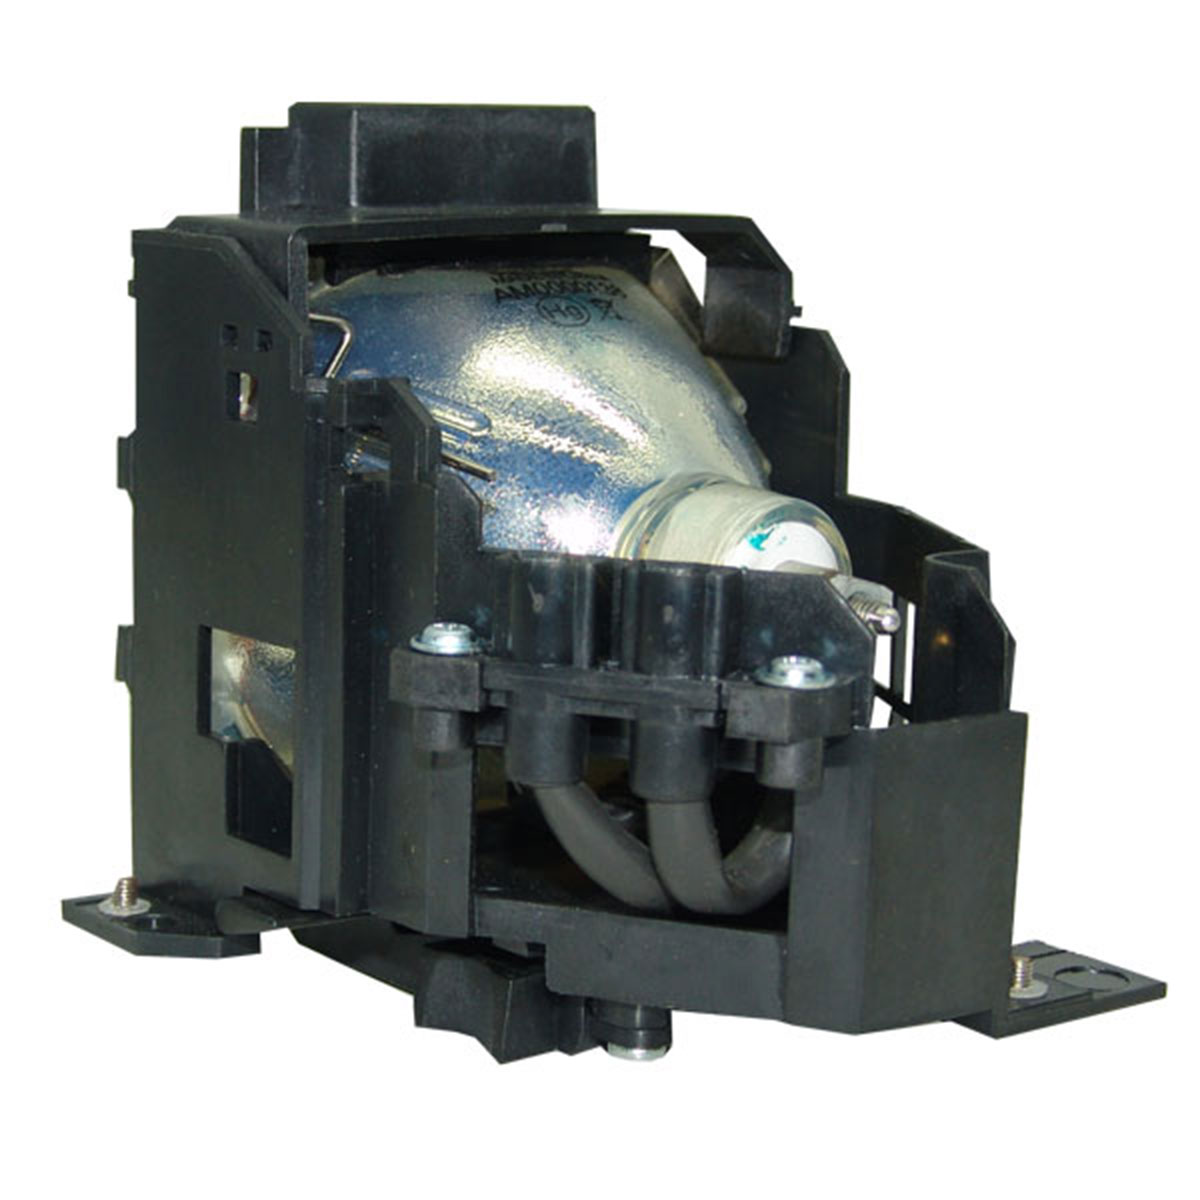 Original Philips Projector Lamp Replacement for Epson PowerLite 800P (Bulb Only) - image 2 of 5